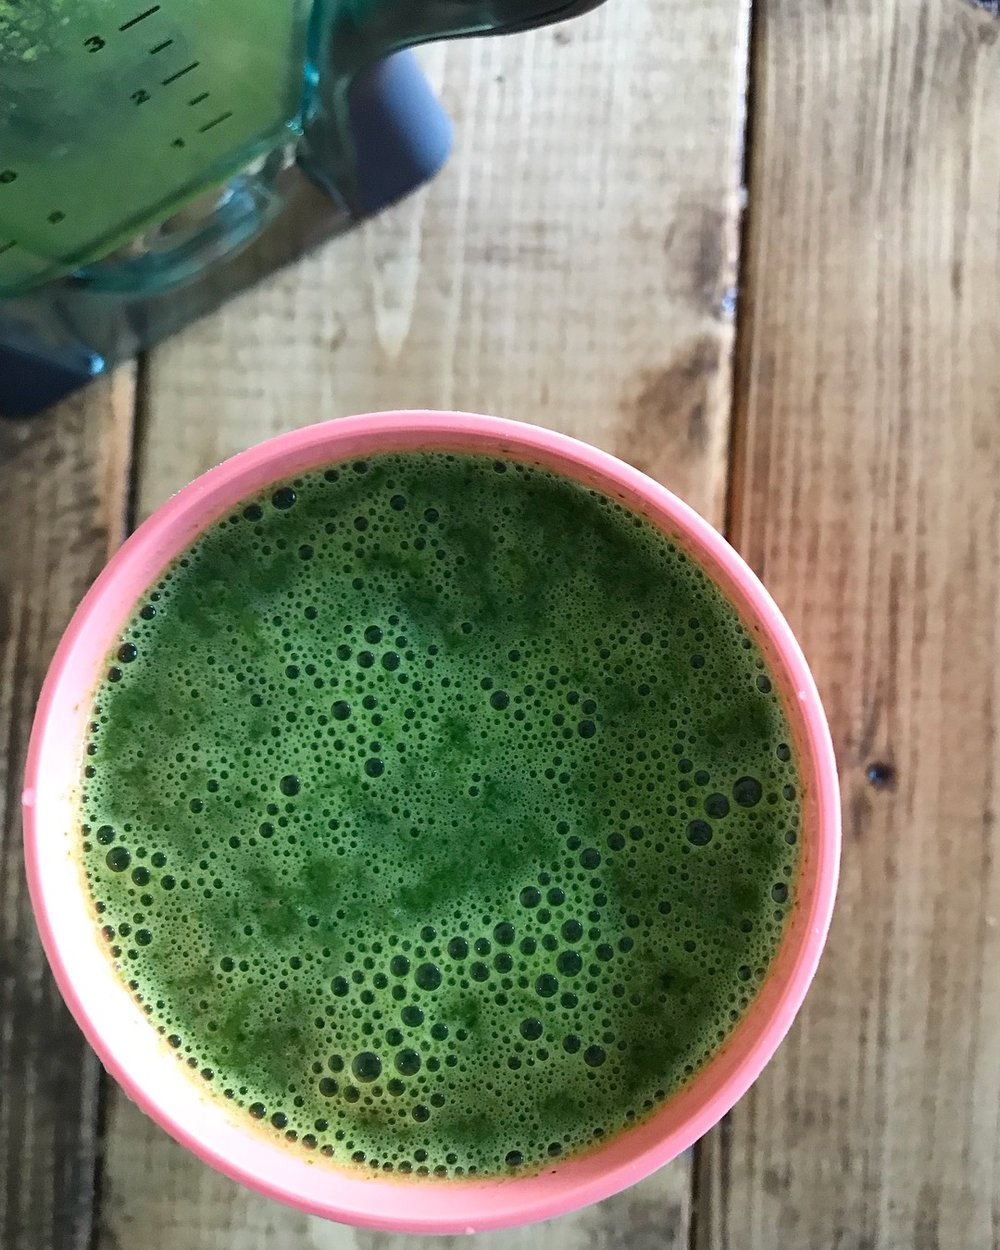 Kale, spinach, and avocado